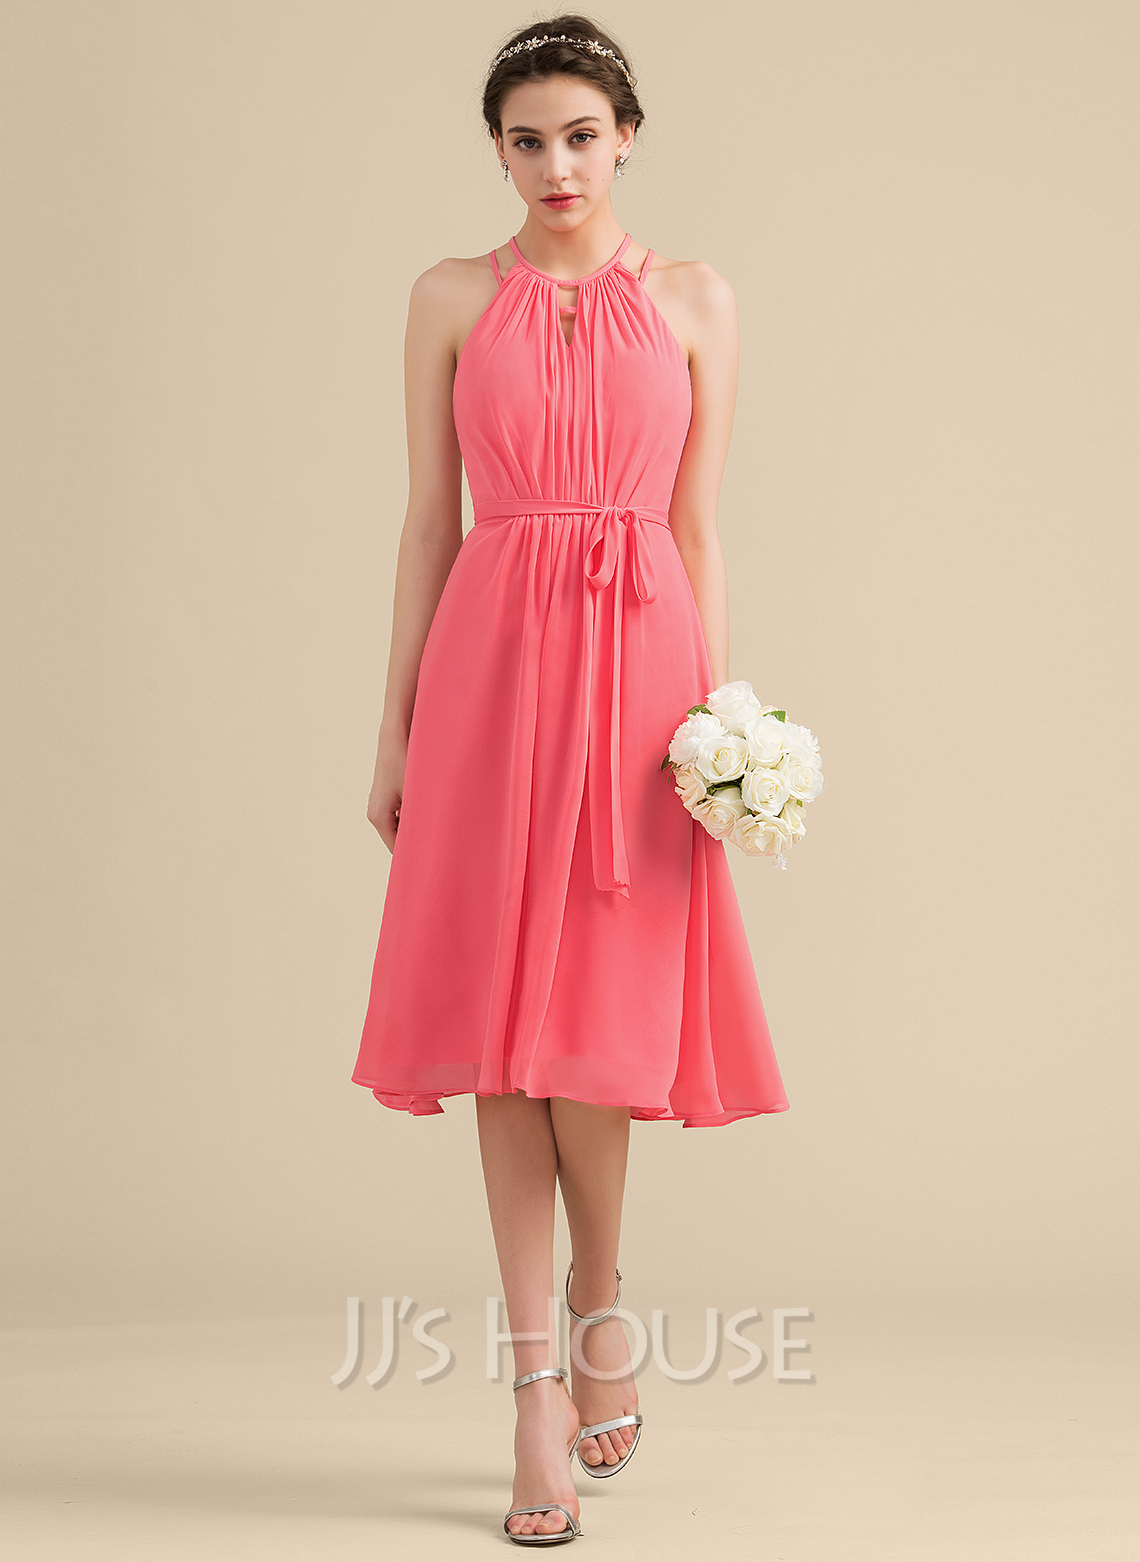 A-Line Scoop Neck Knee-Length Chiffon Bridesmaid Dress With Ruffle Bow(s)